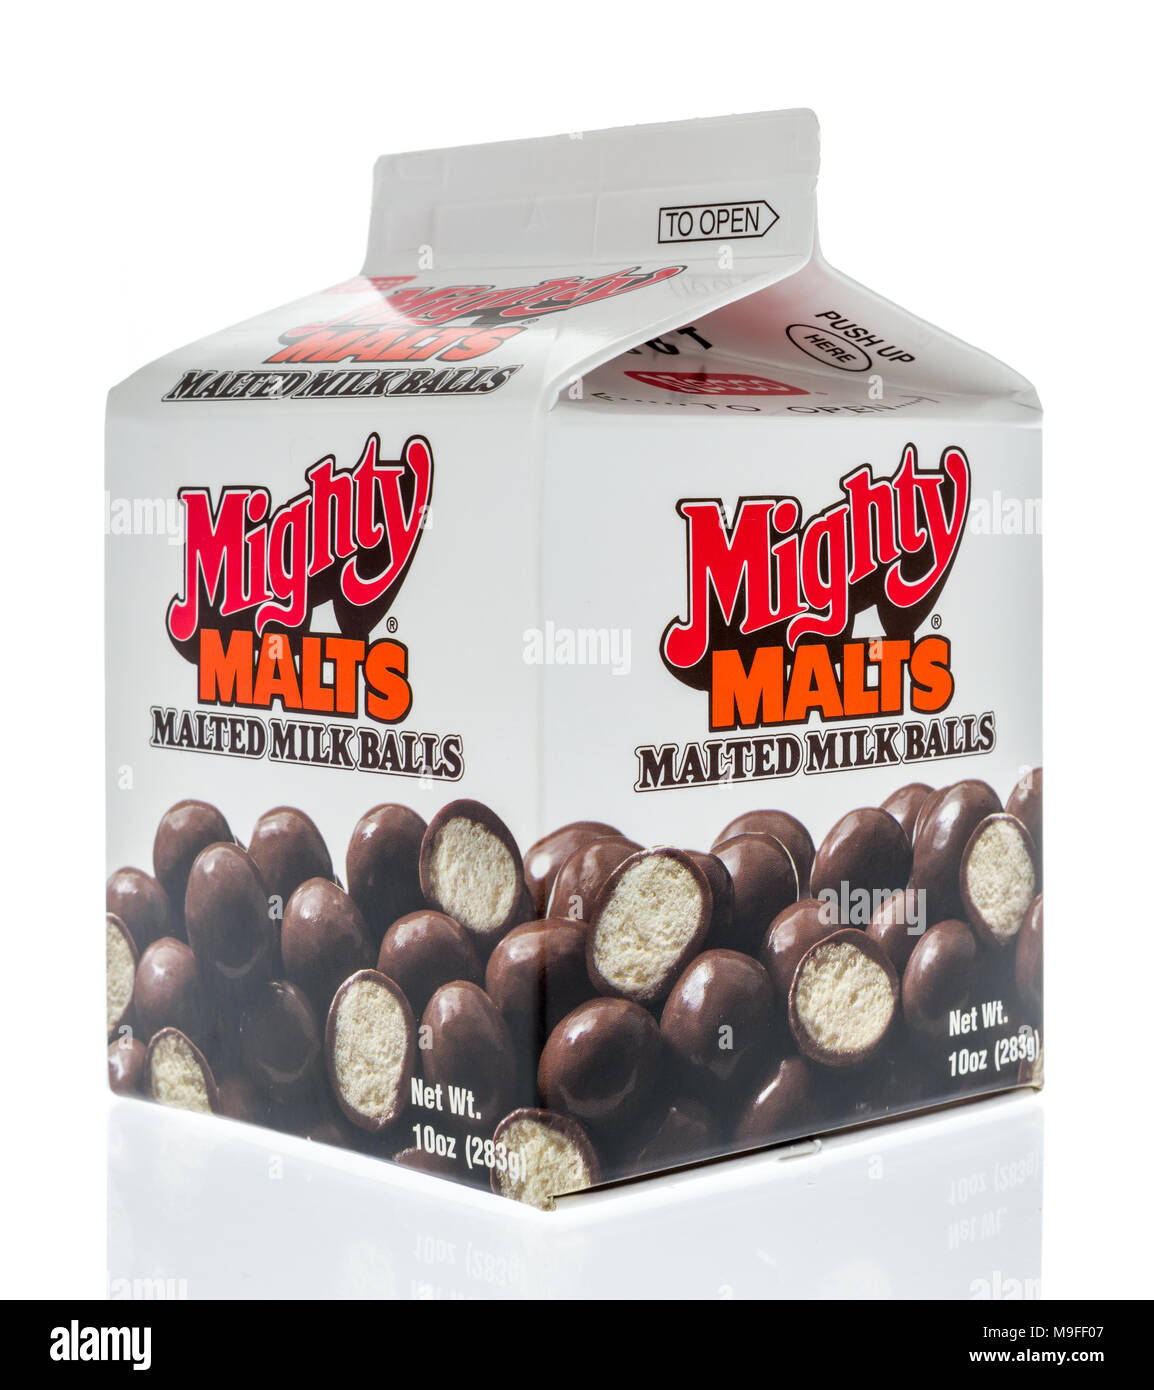 Winneconne, WI - 17 March 2018: A box of Mighty Malts malted milk balls candy on an isolated background. - Stock Image